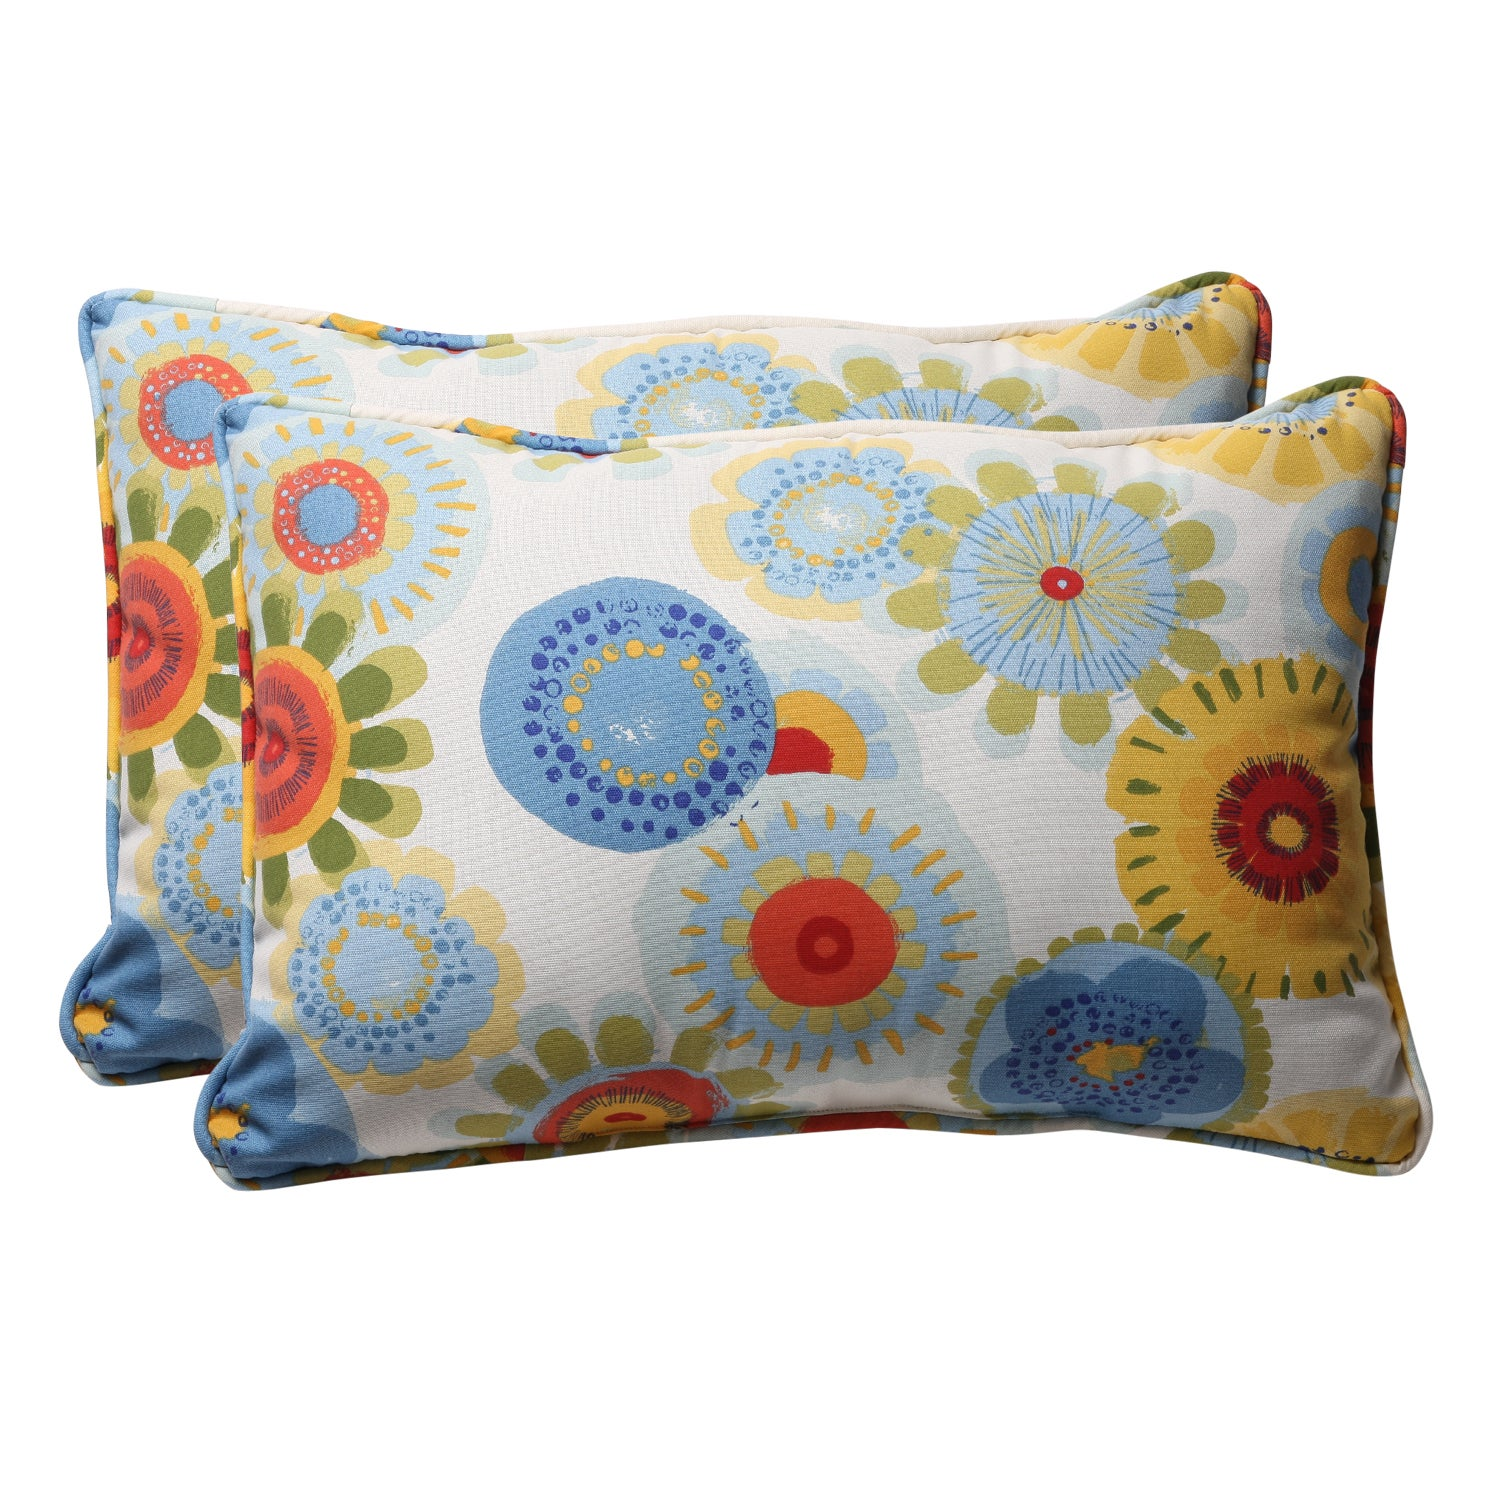 Decorative Multicolored Floral Rectangle Outdoor Toss Pillow (Set of 2)